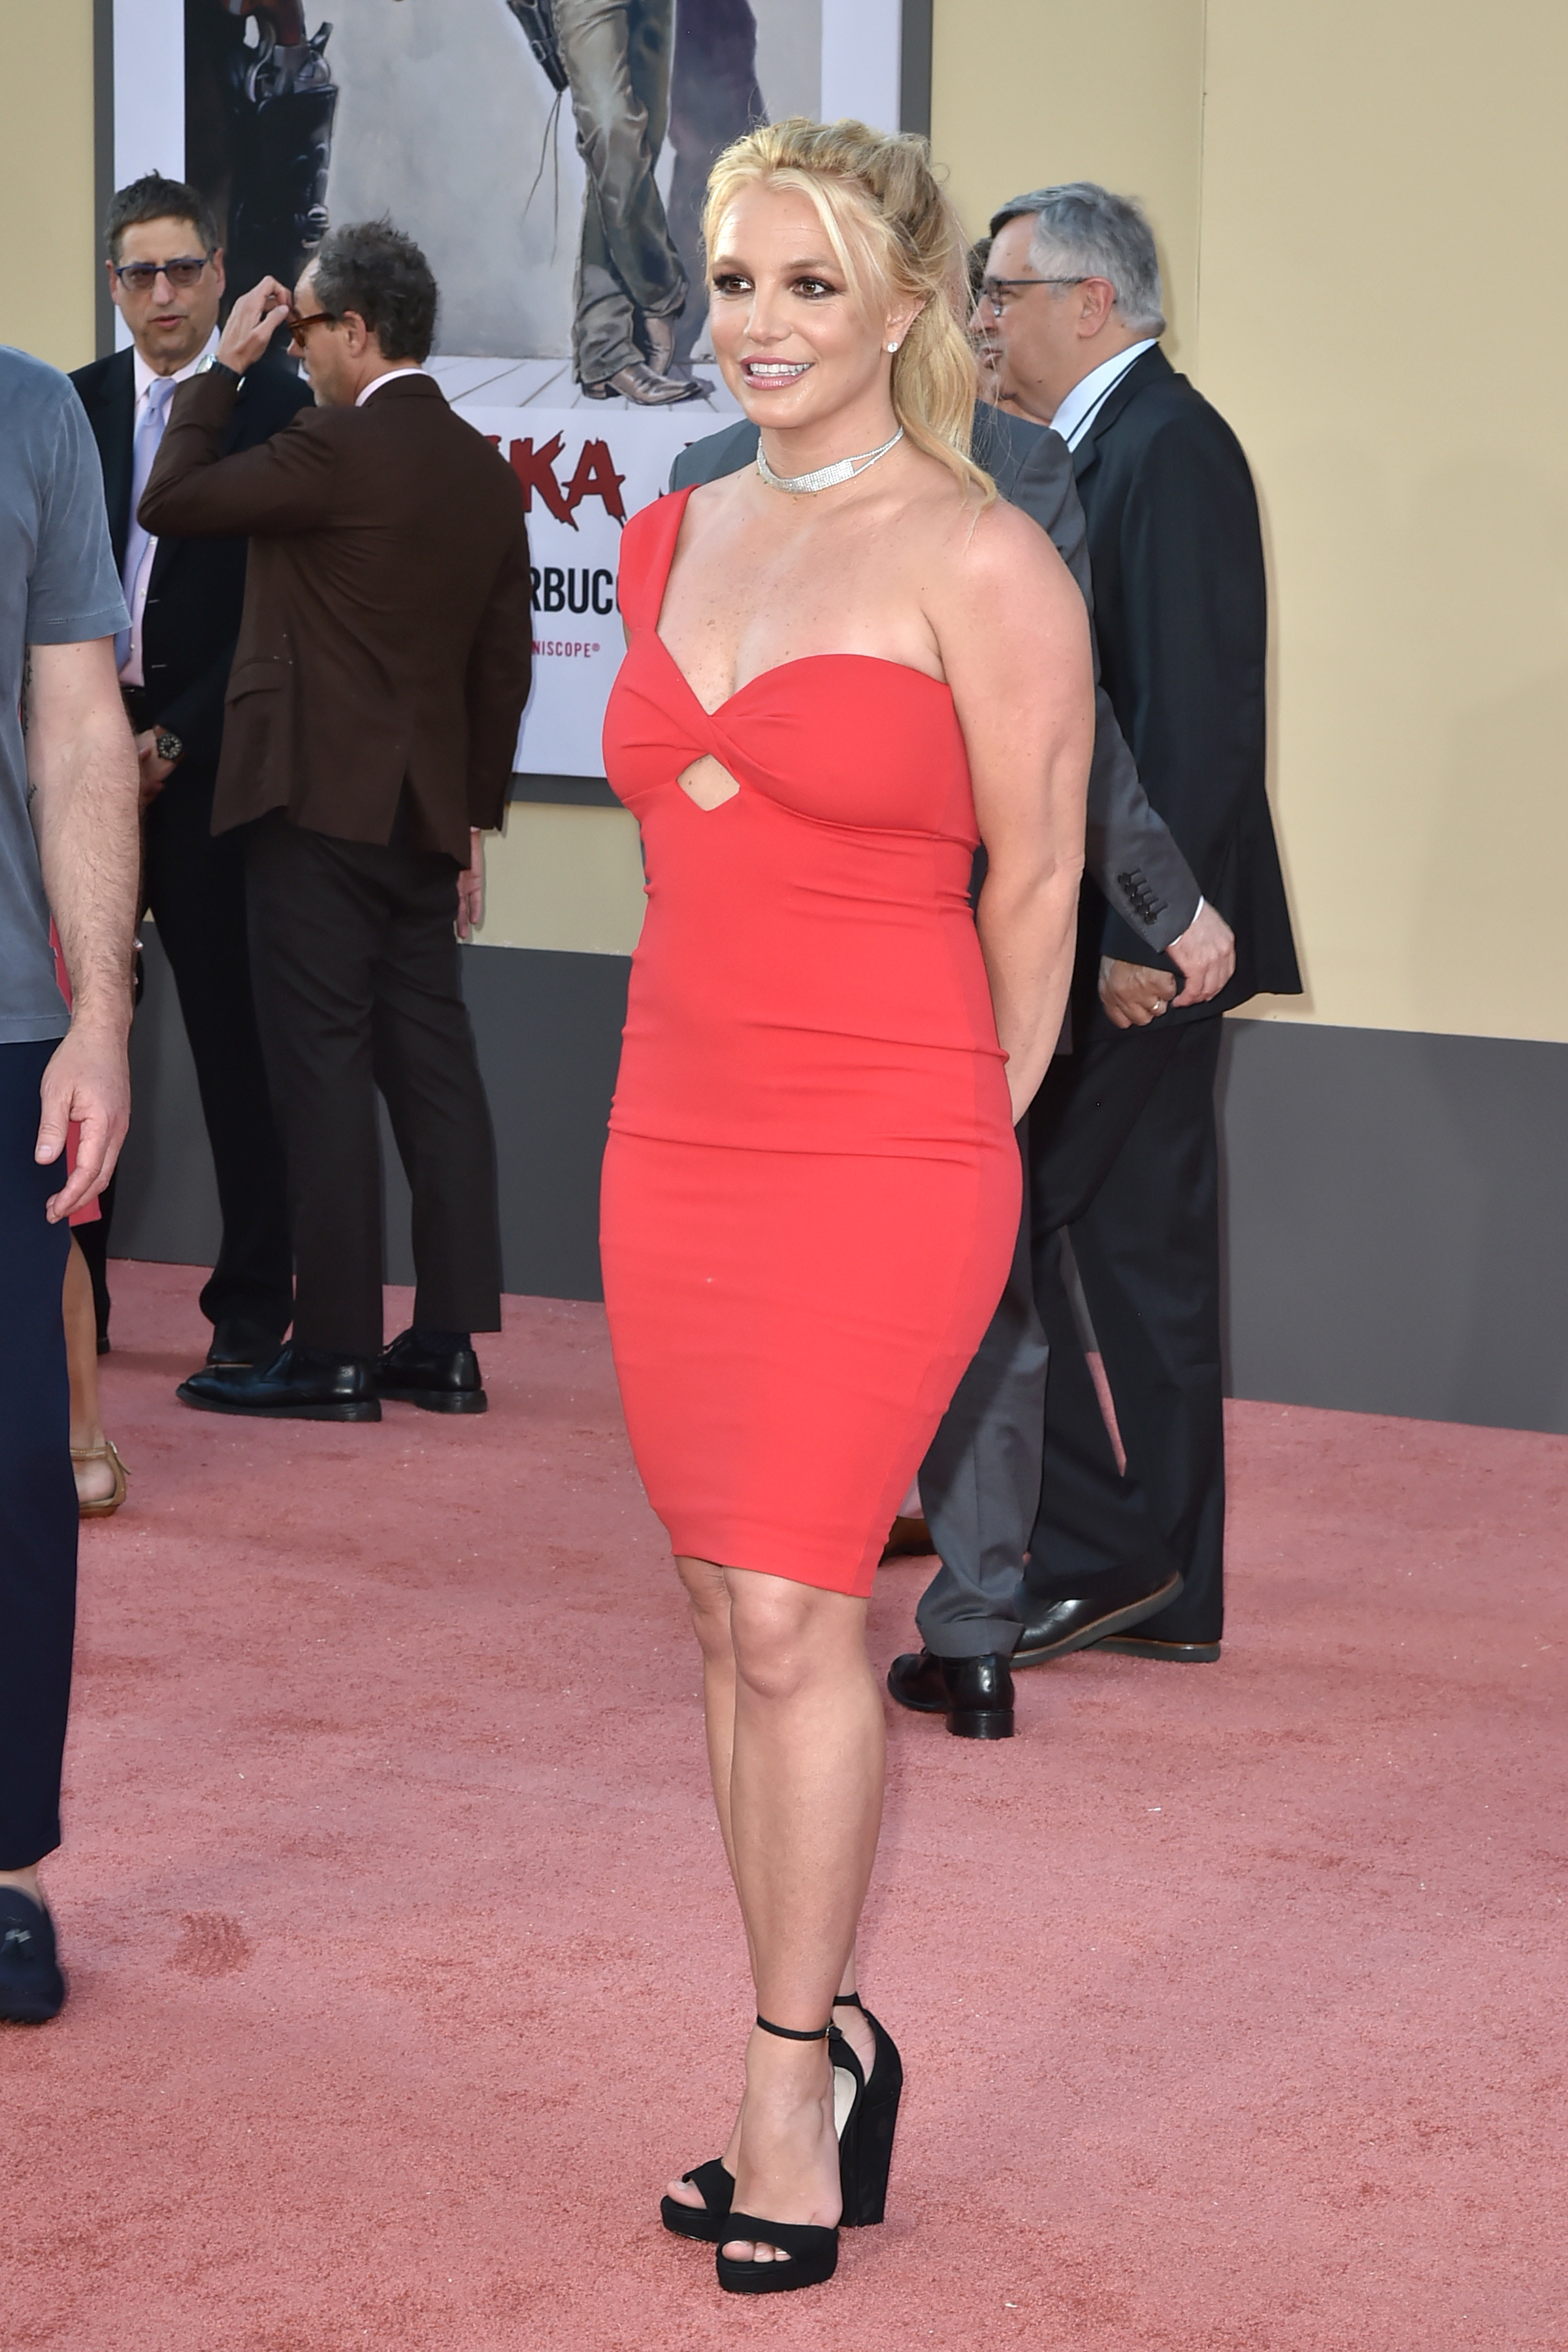 Britney Spears stands on the red carpet at the Once Upon A Time In Hollywood premiere in Hollywood